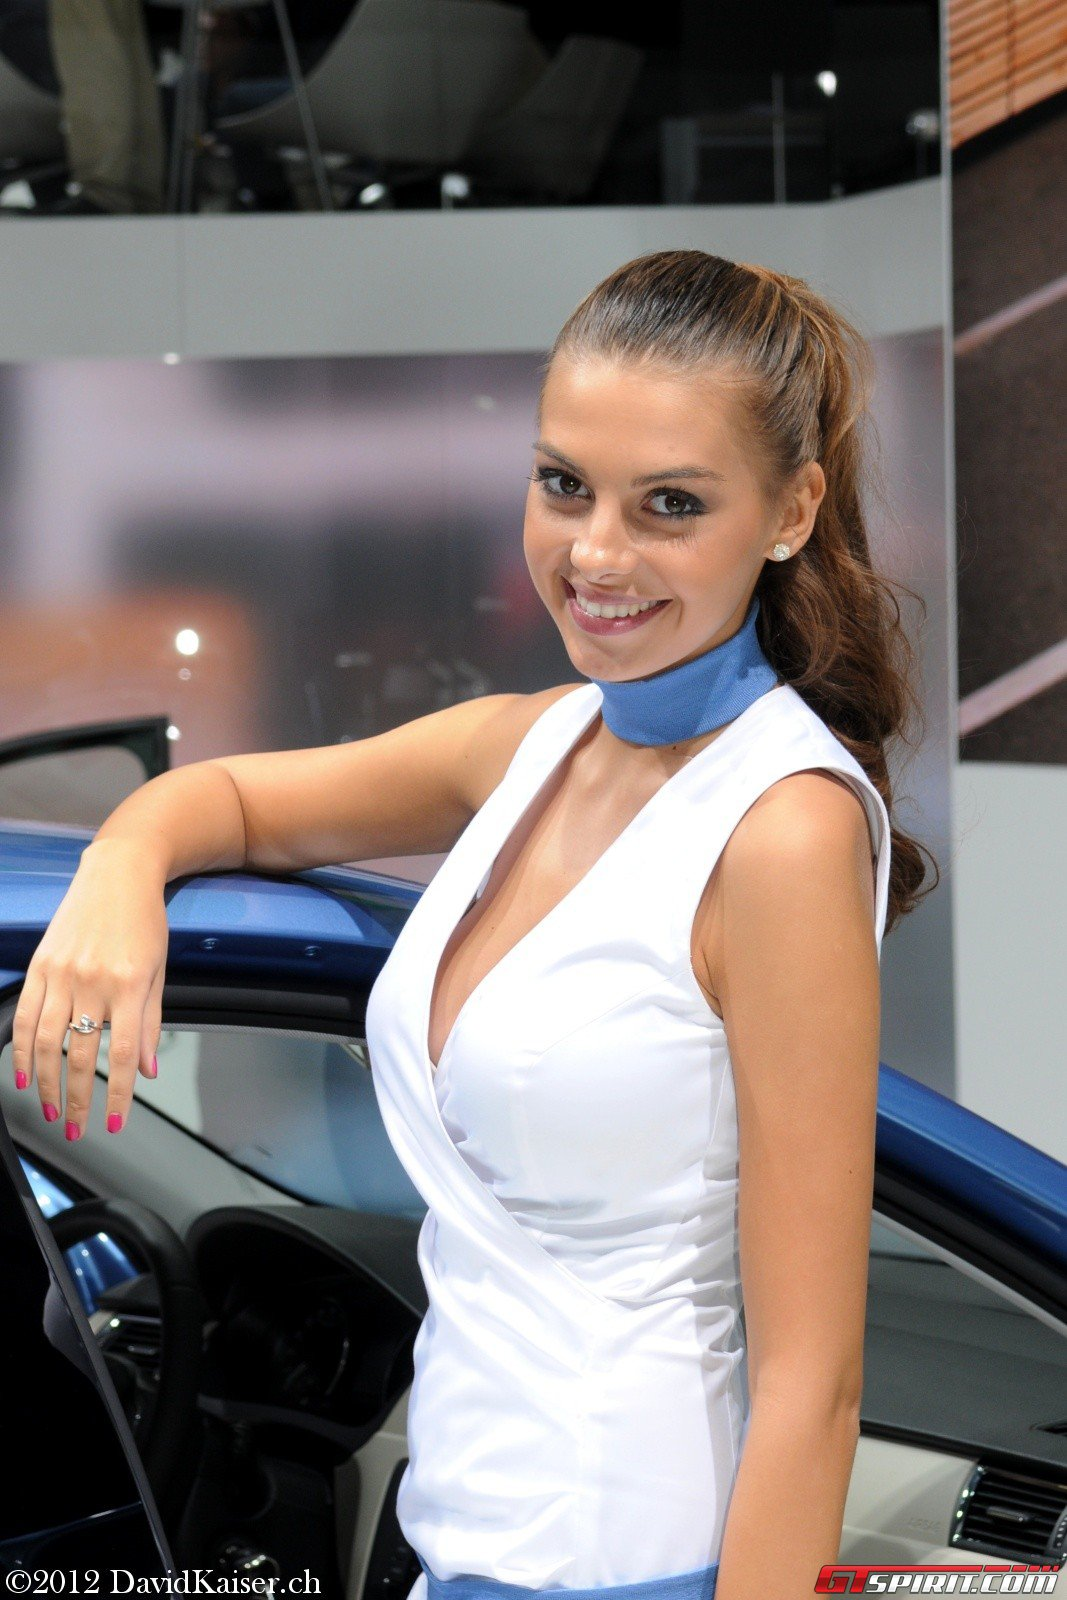 Paris Motor Show 2012 Girls by David Kaiser Photography - Part 2 Photo 22